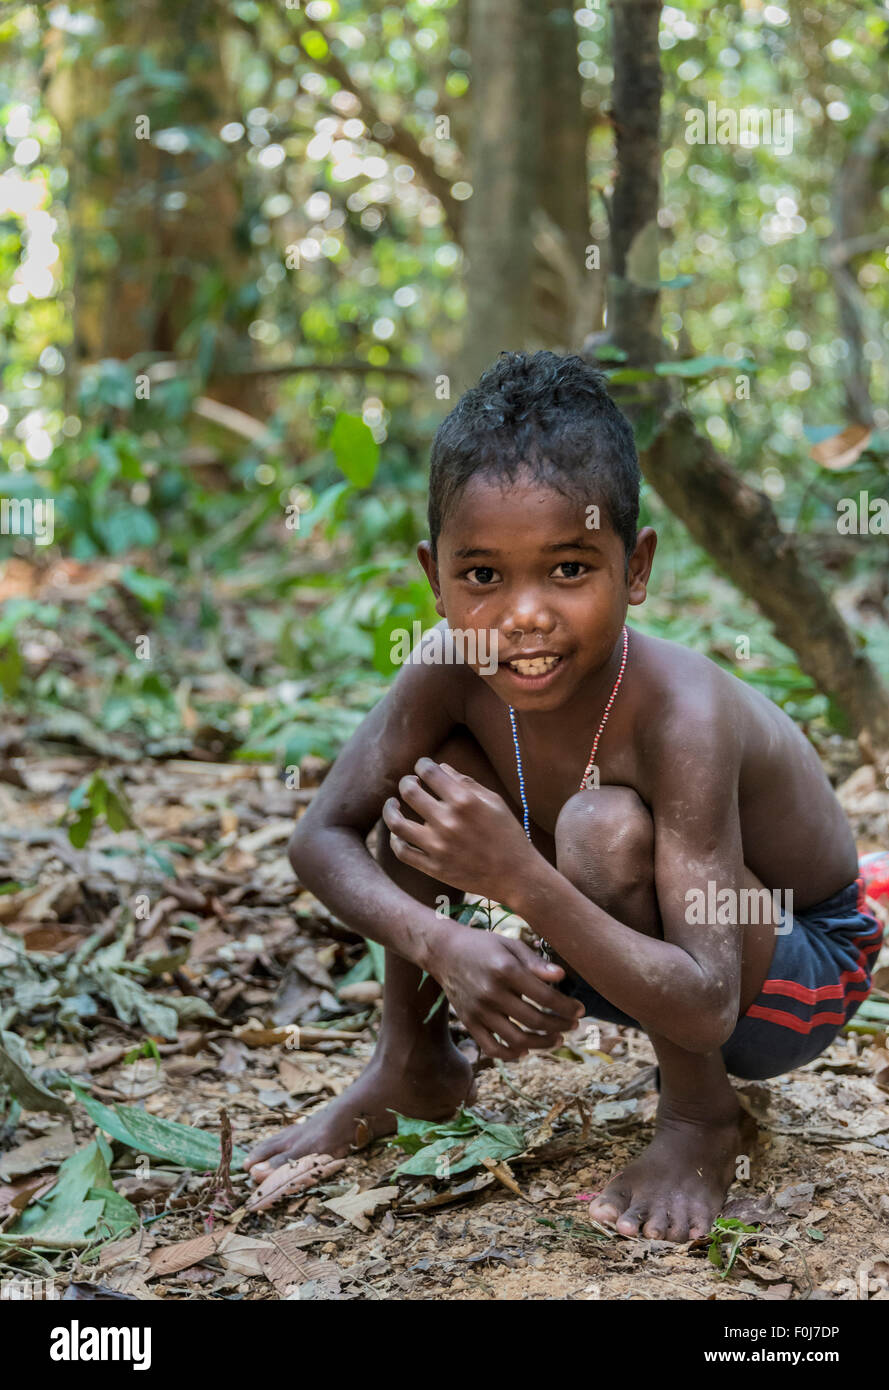 Little boy of the Orang Asil tribe grinning, squatting on the ground in the jungle, native, indigenous Volk - Stock Image